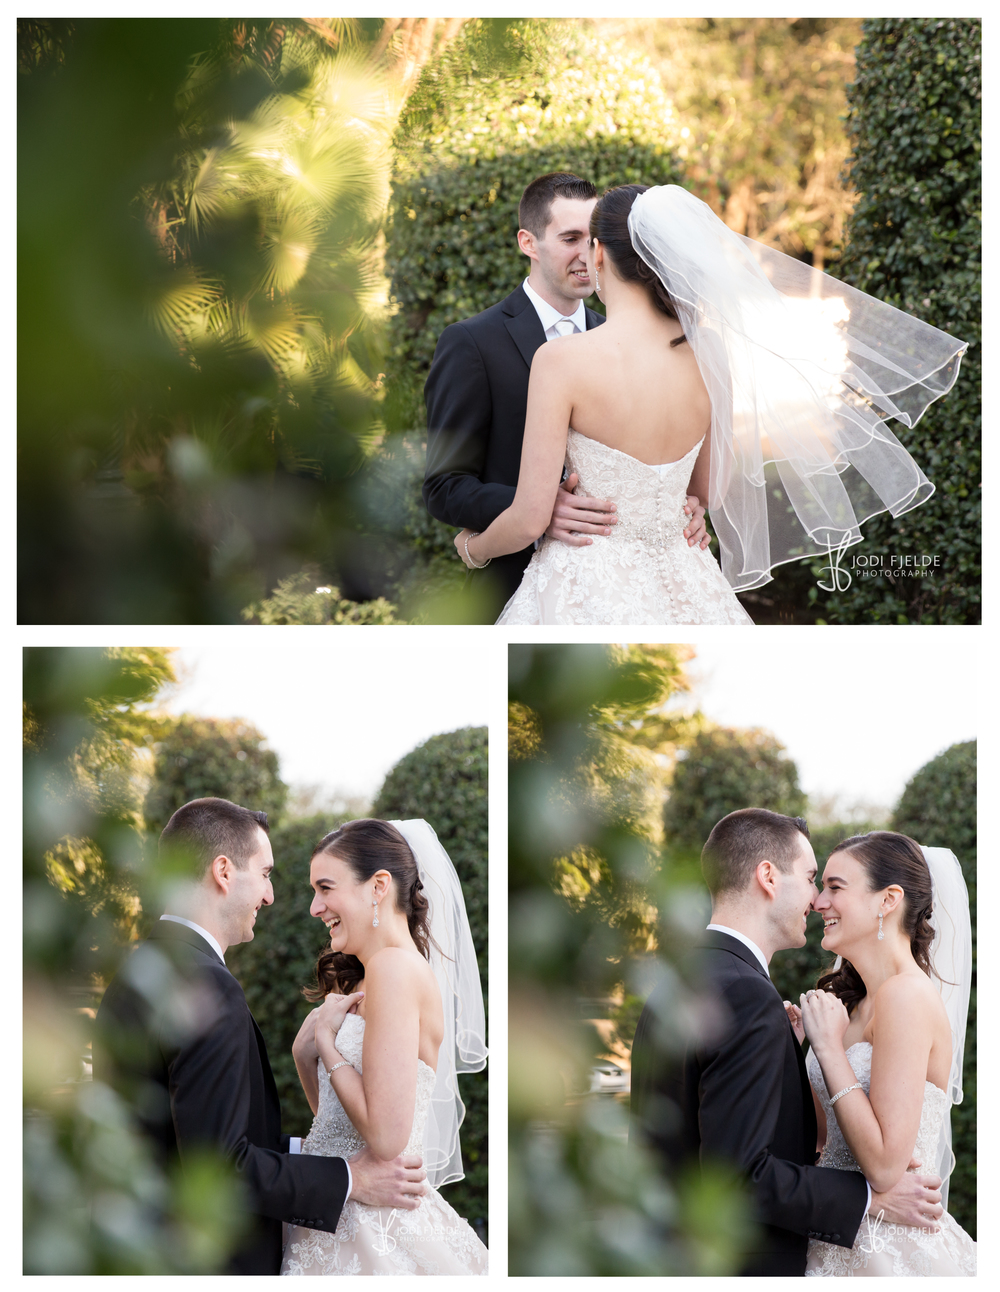 Benvenuto_Palm_Beach_Wedding_Jewish_Michelle & Jason_Jodi_Fjedle_Photography 23.jpg